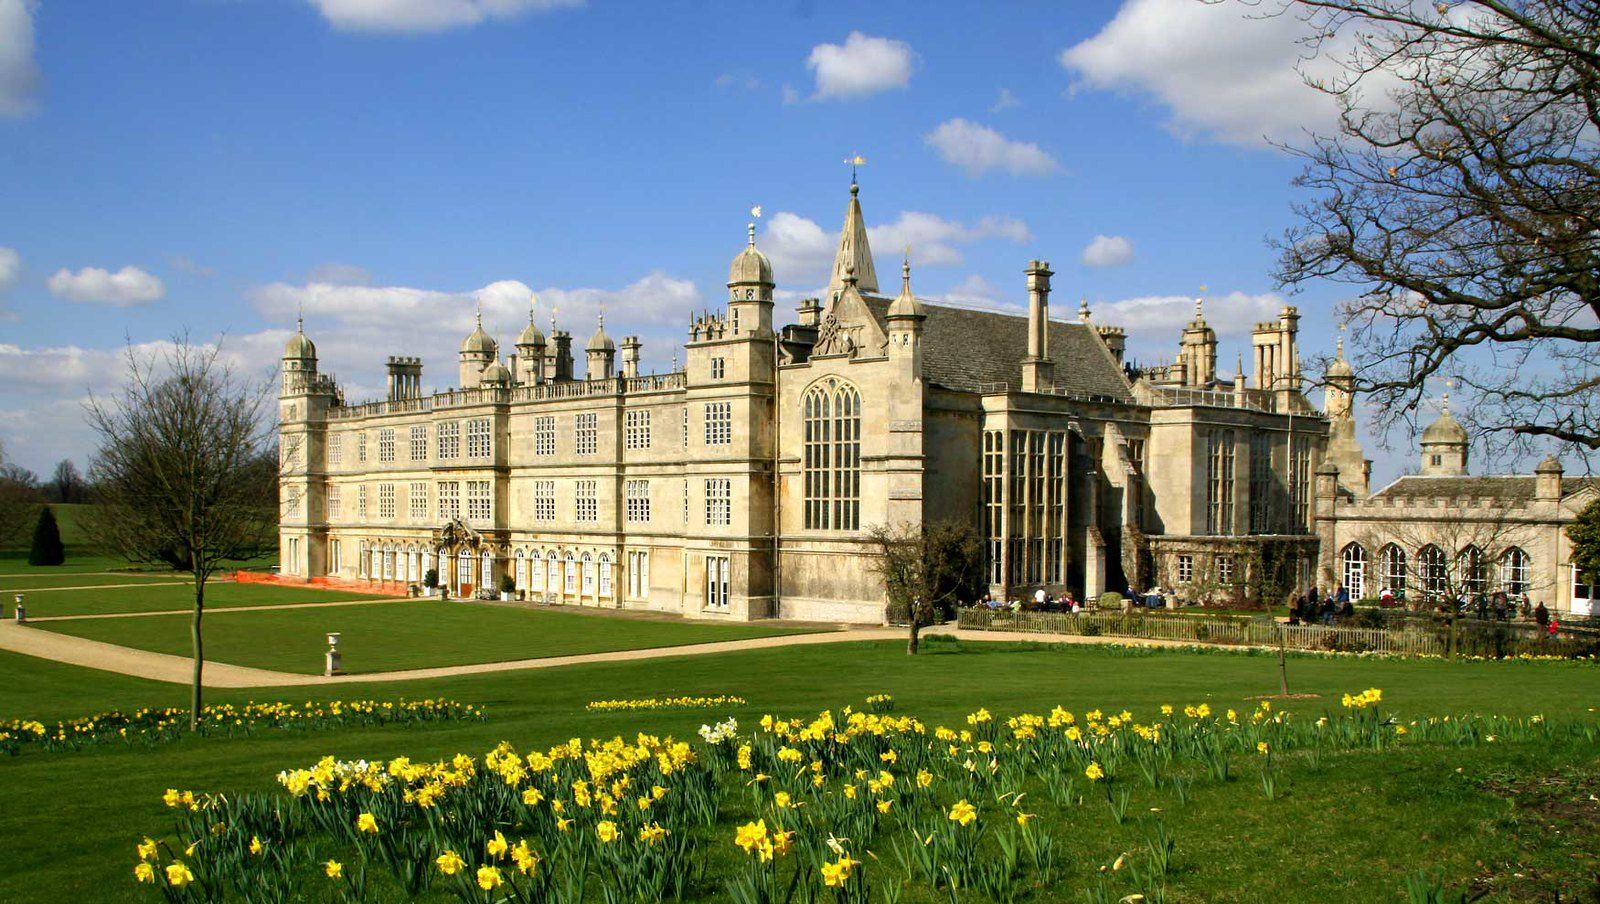 Burghley House near Stamford is one of the properties mentioned in the Historic England report